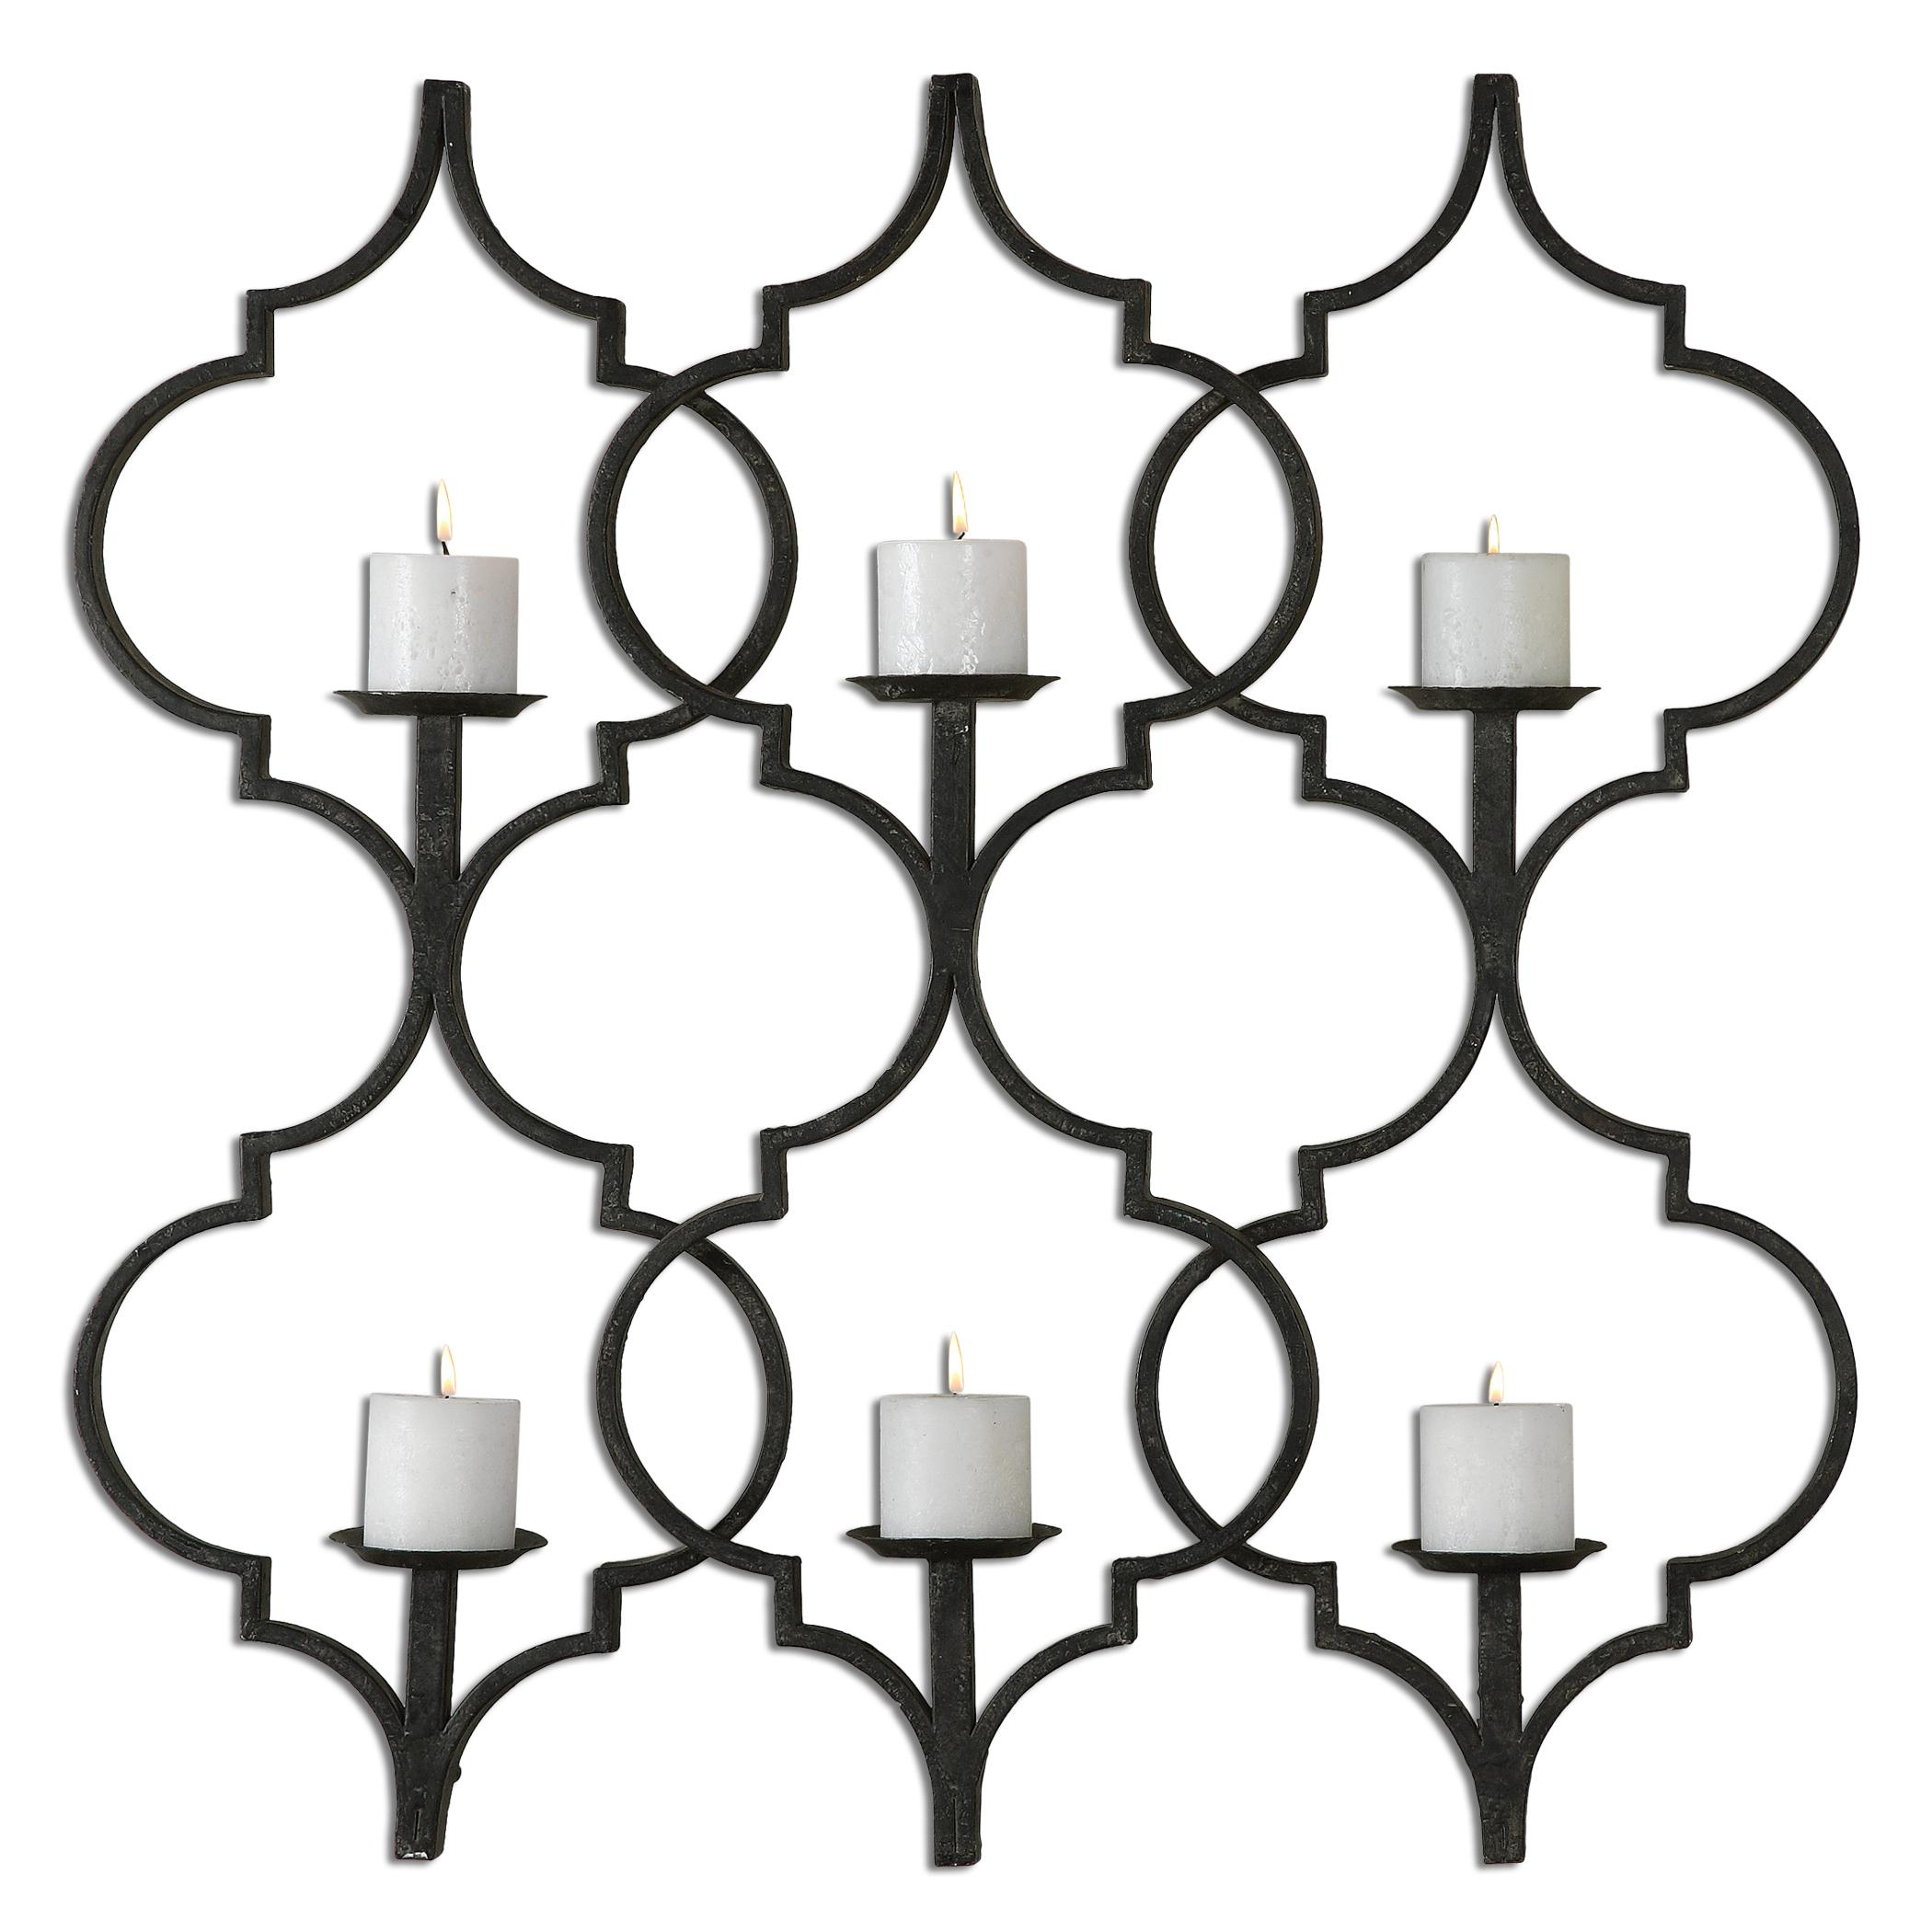 Uttermost Alternative Wall Decor Zakaria Metal Candle Wall Sconce - Item Number: 13998